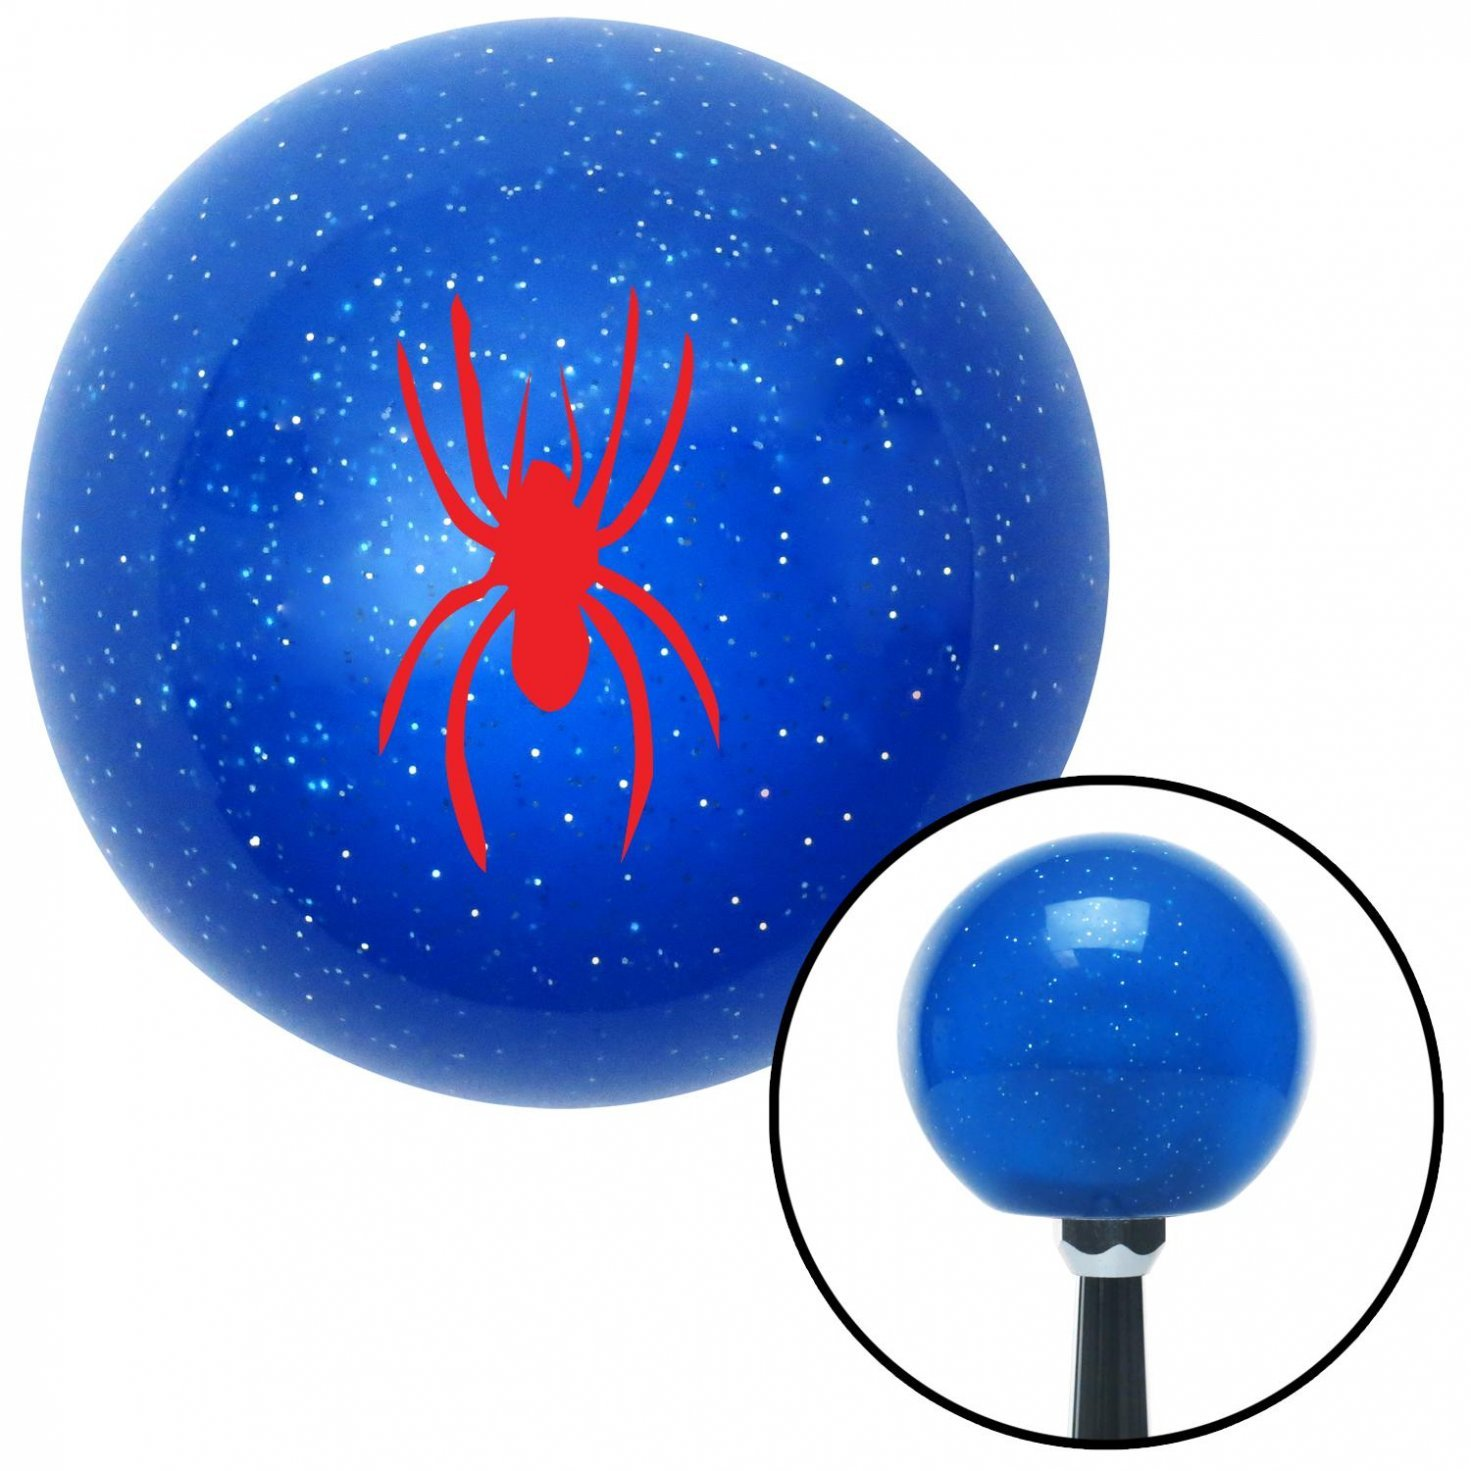 Red Spider Image American Shifter 21905 Blue Metal Flake Shift Knob with 16mm x 1.5 Insert